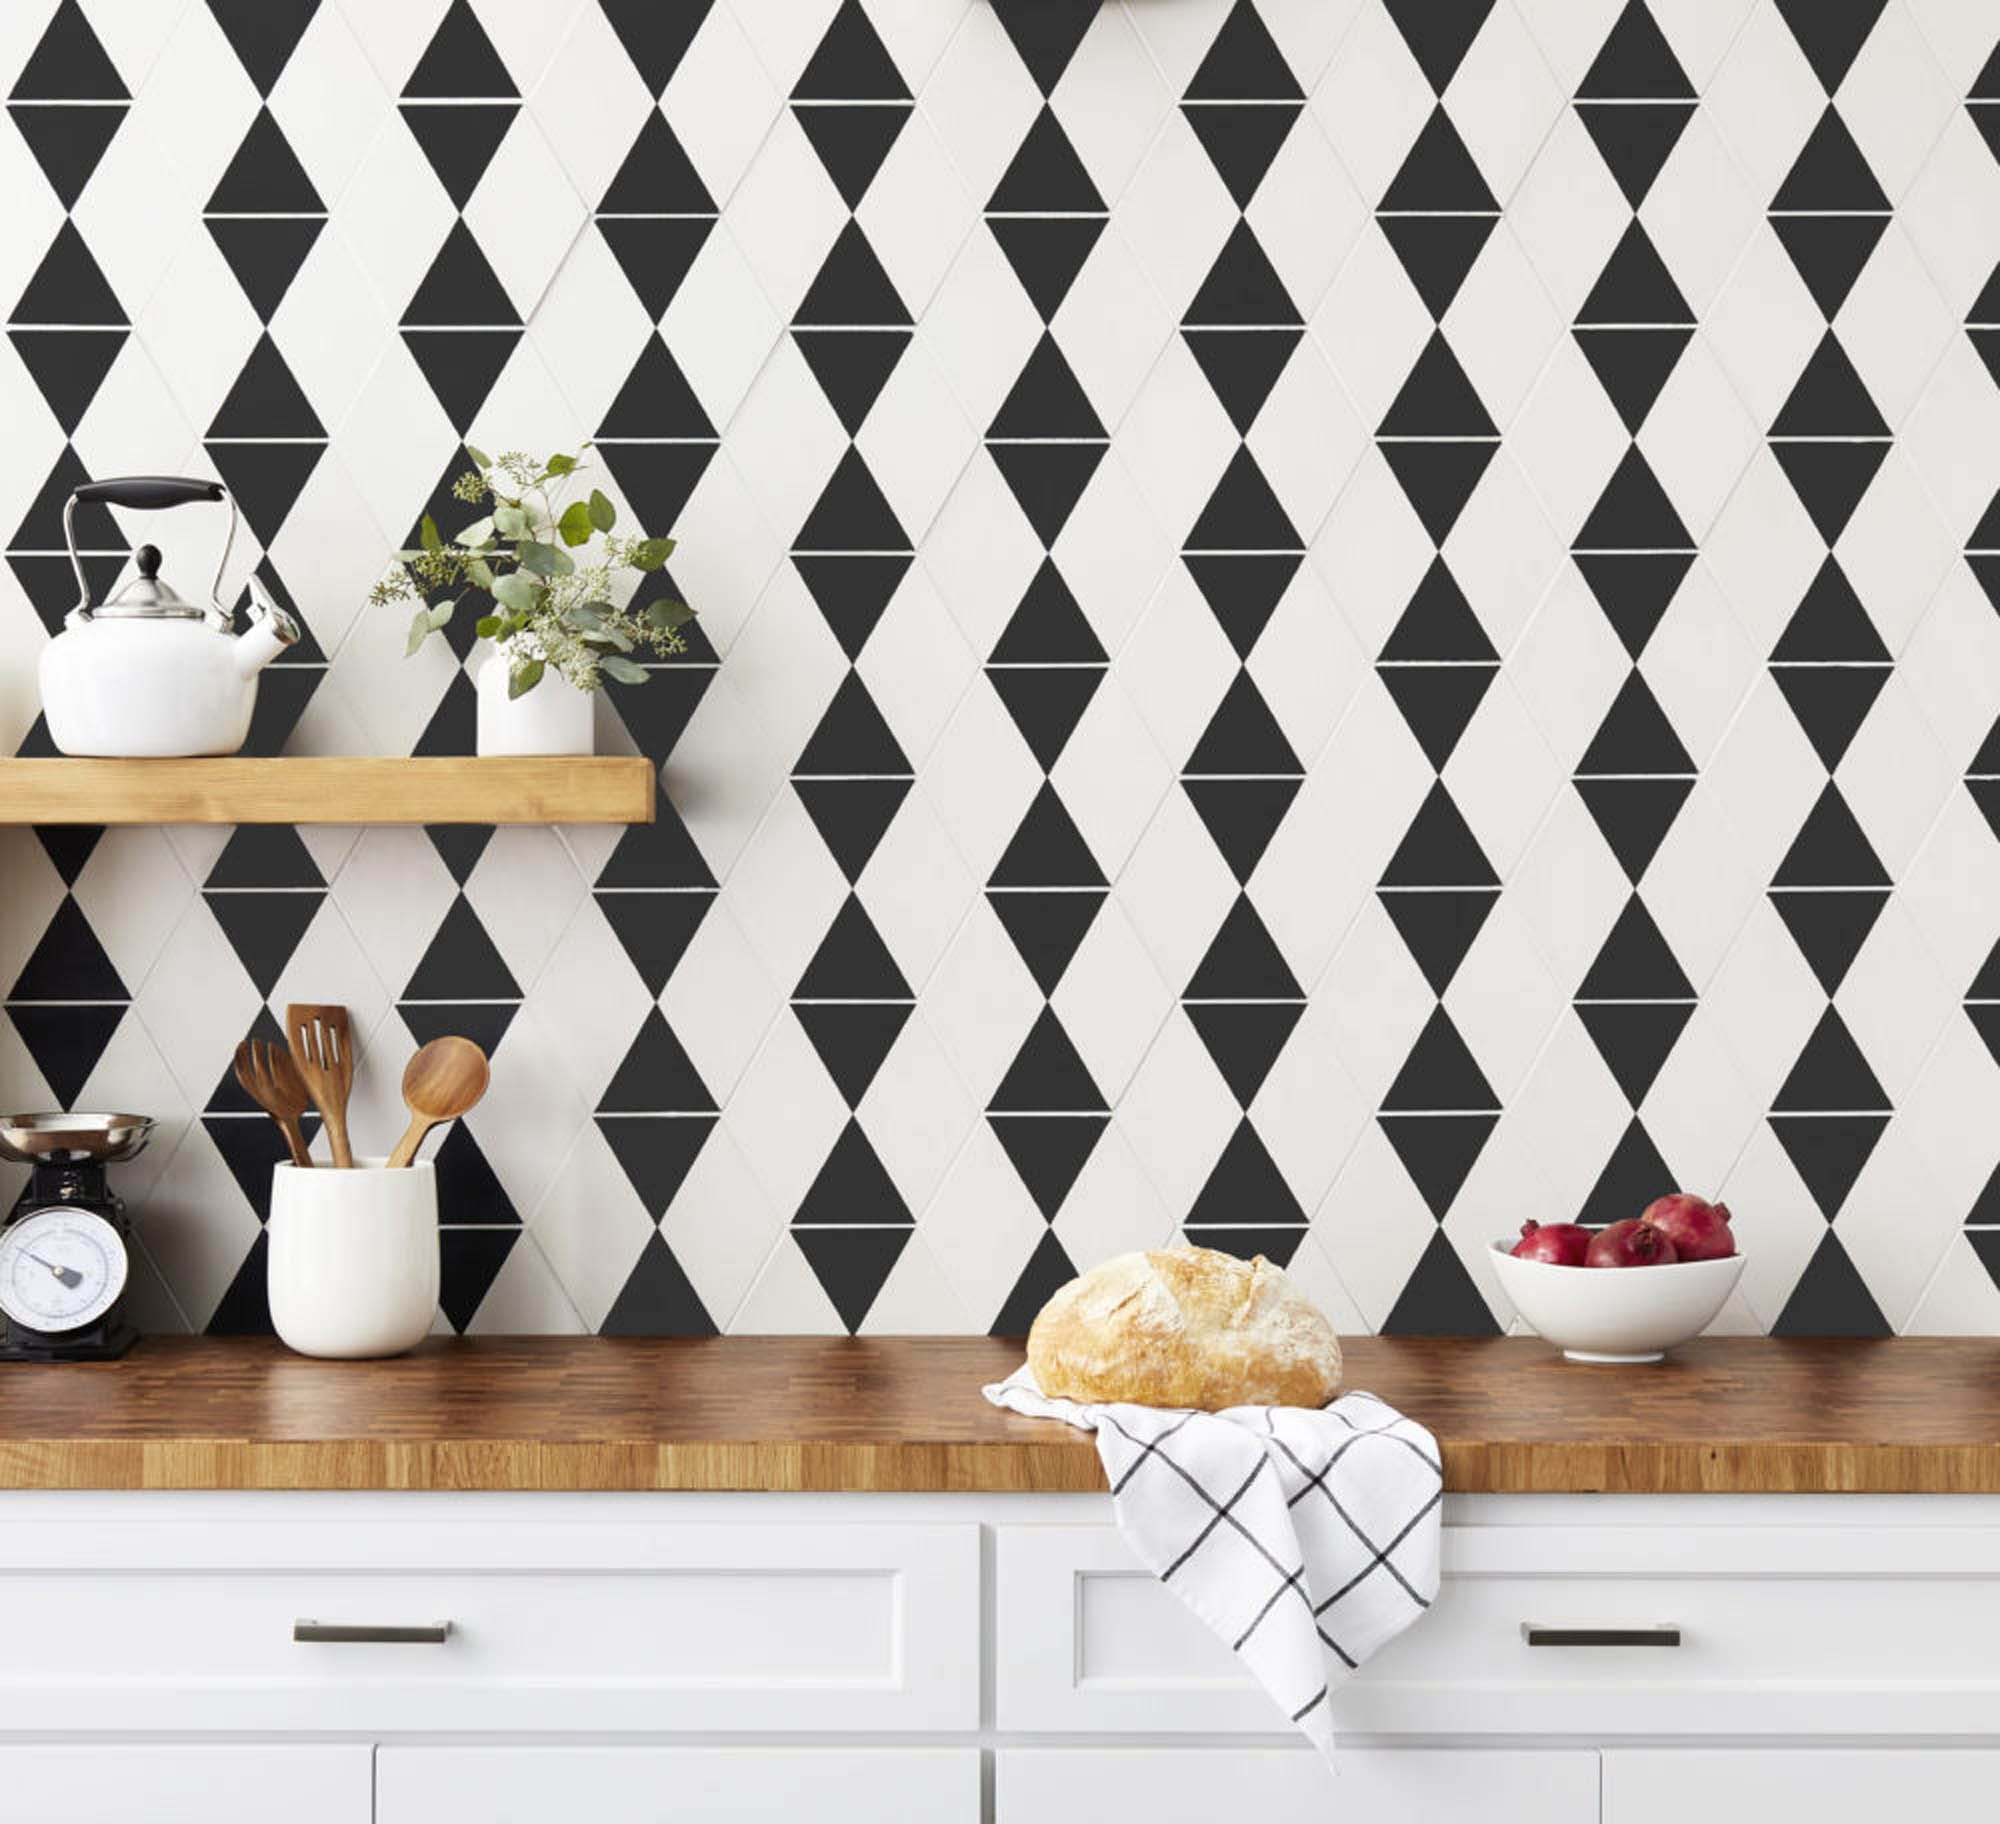 Black and white hexagonal wall tile